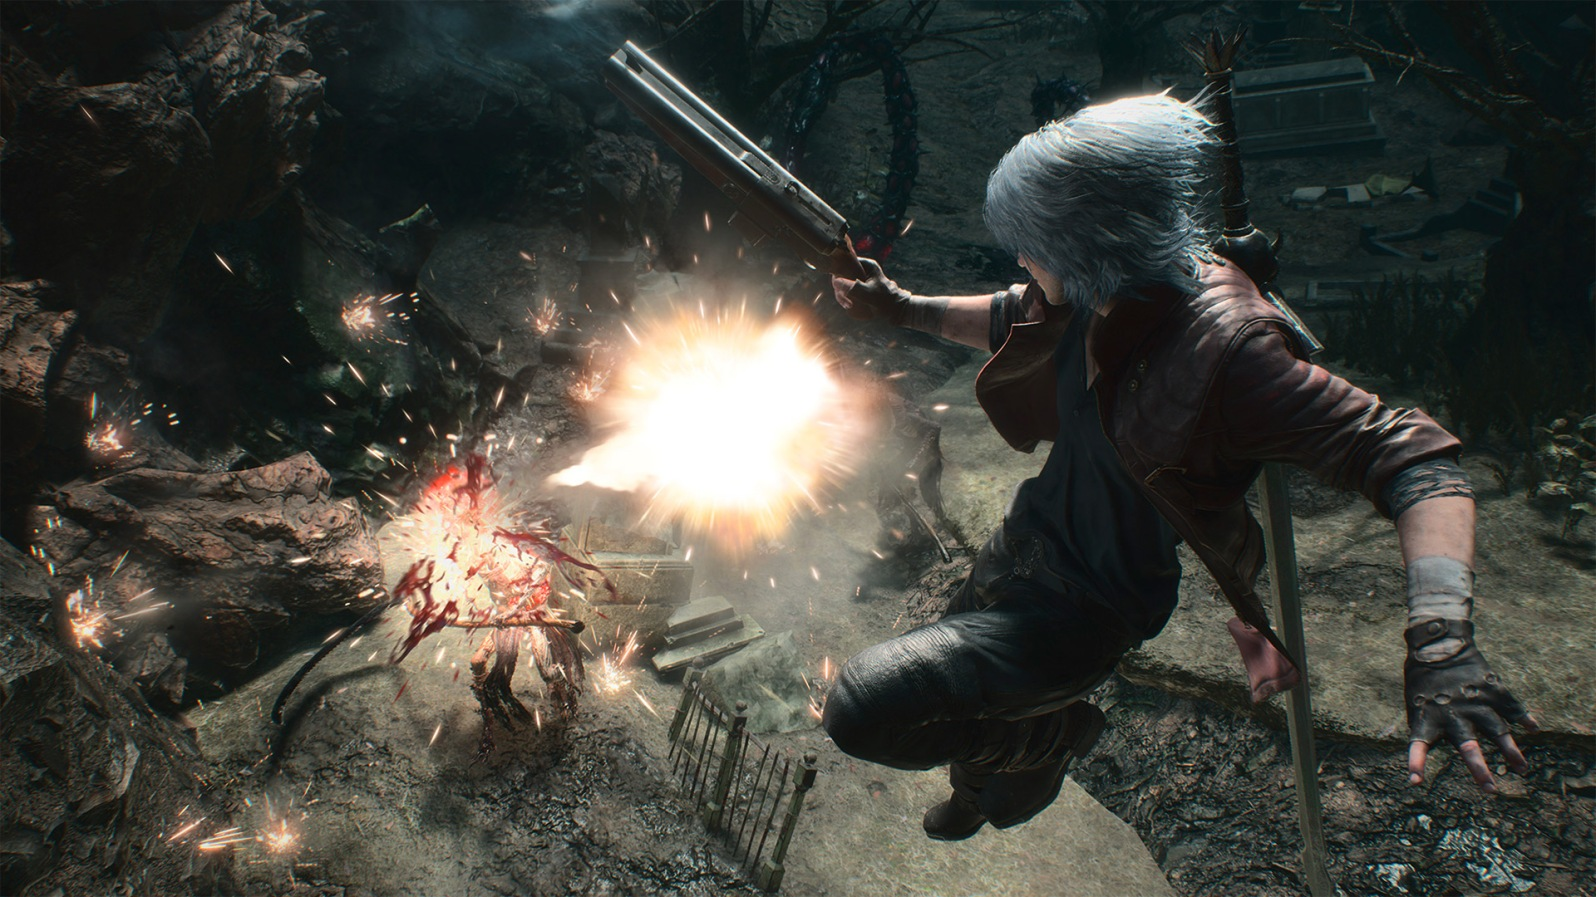 Quelle: devilmaycry5.com - Devil May Cry 5